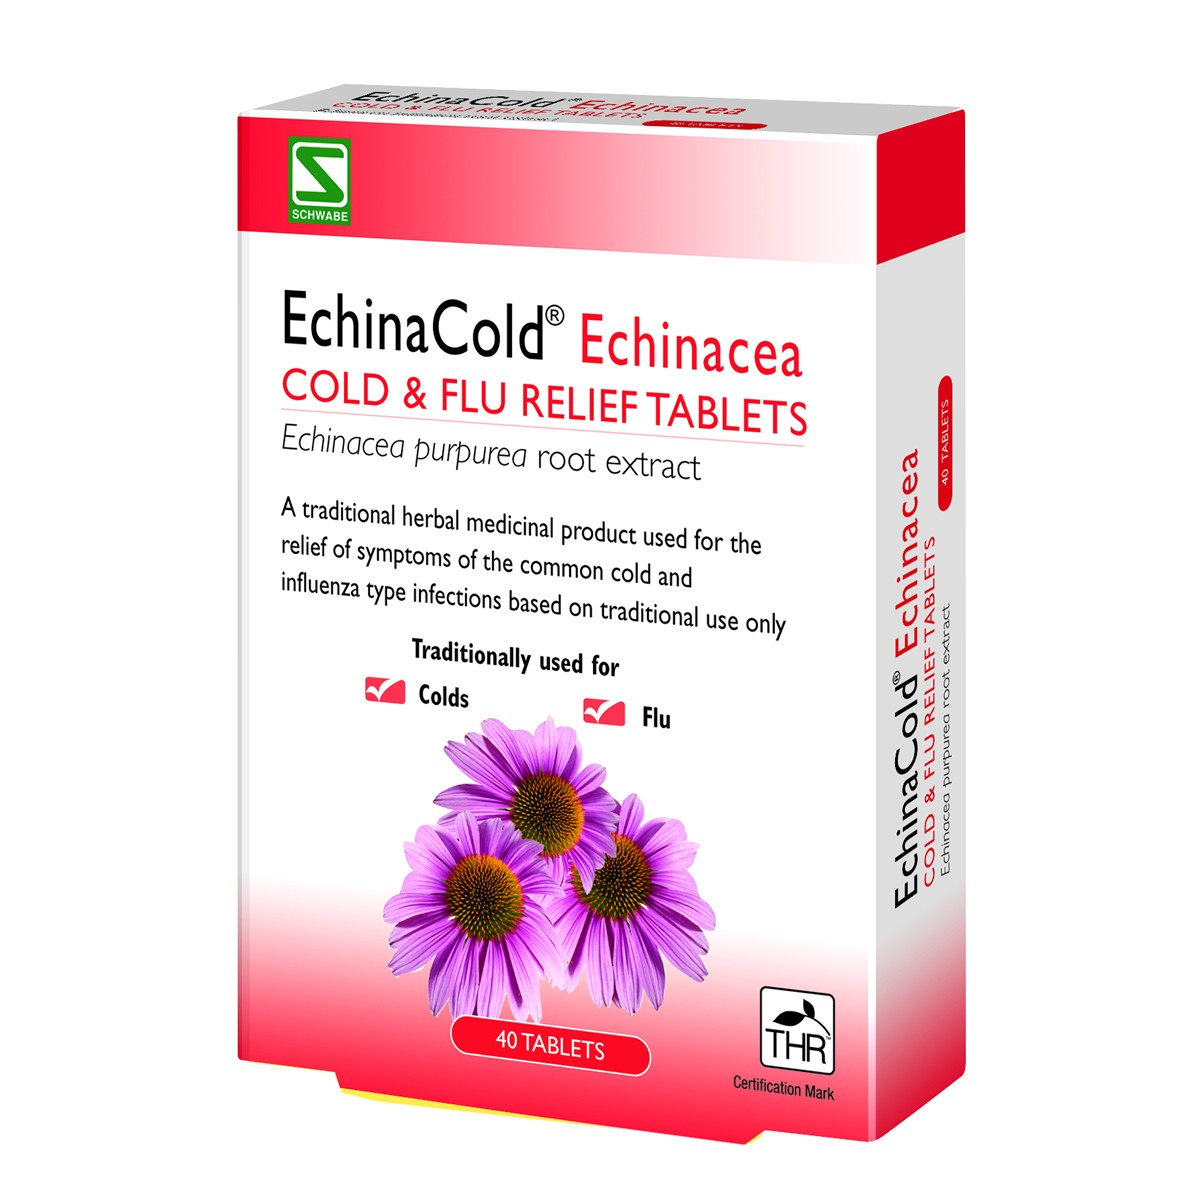 Schwabe EchinaCold Echinacea Cold & Flu Relief Tablets